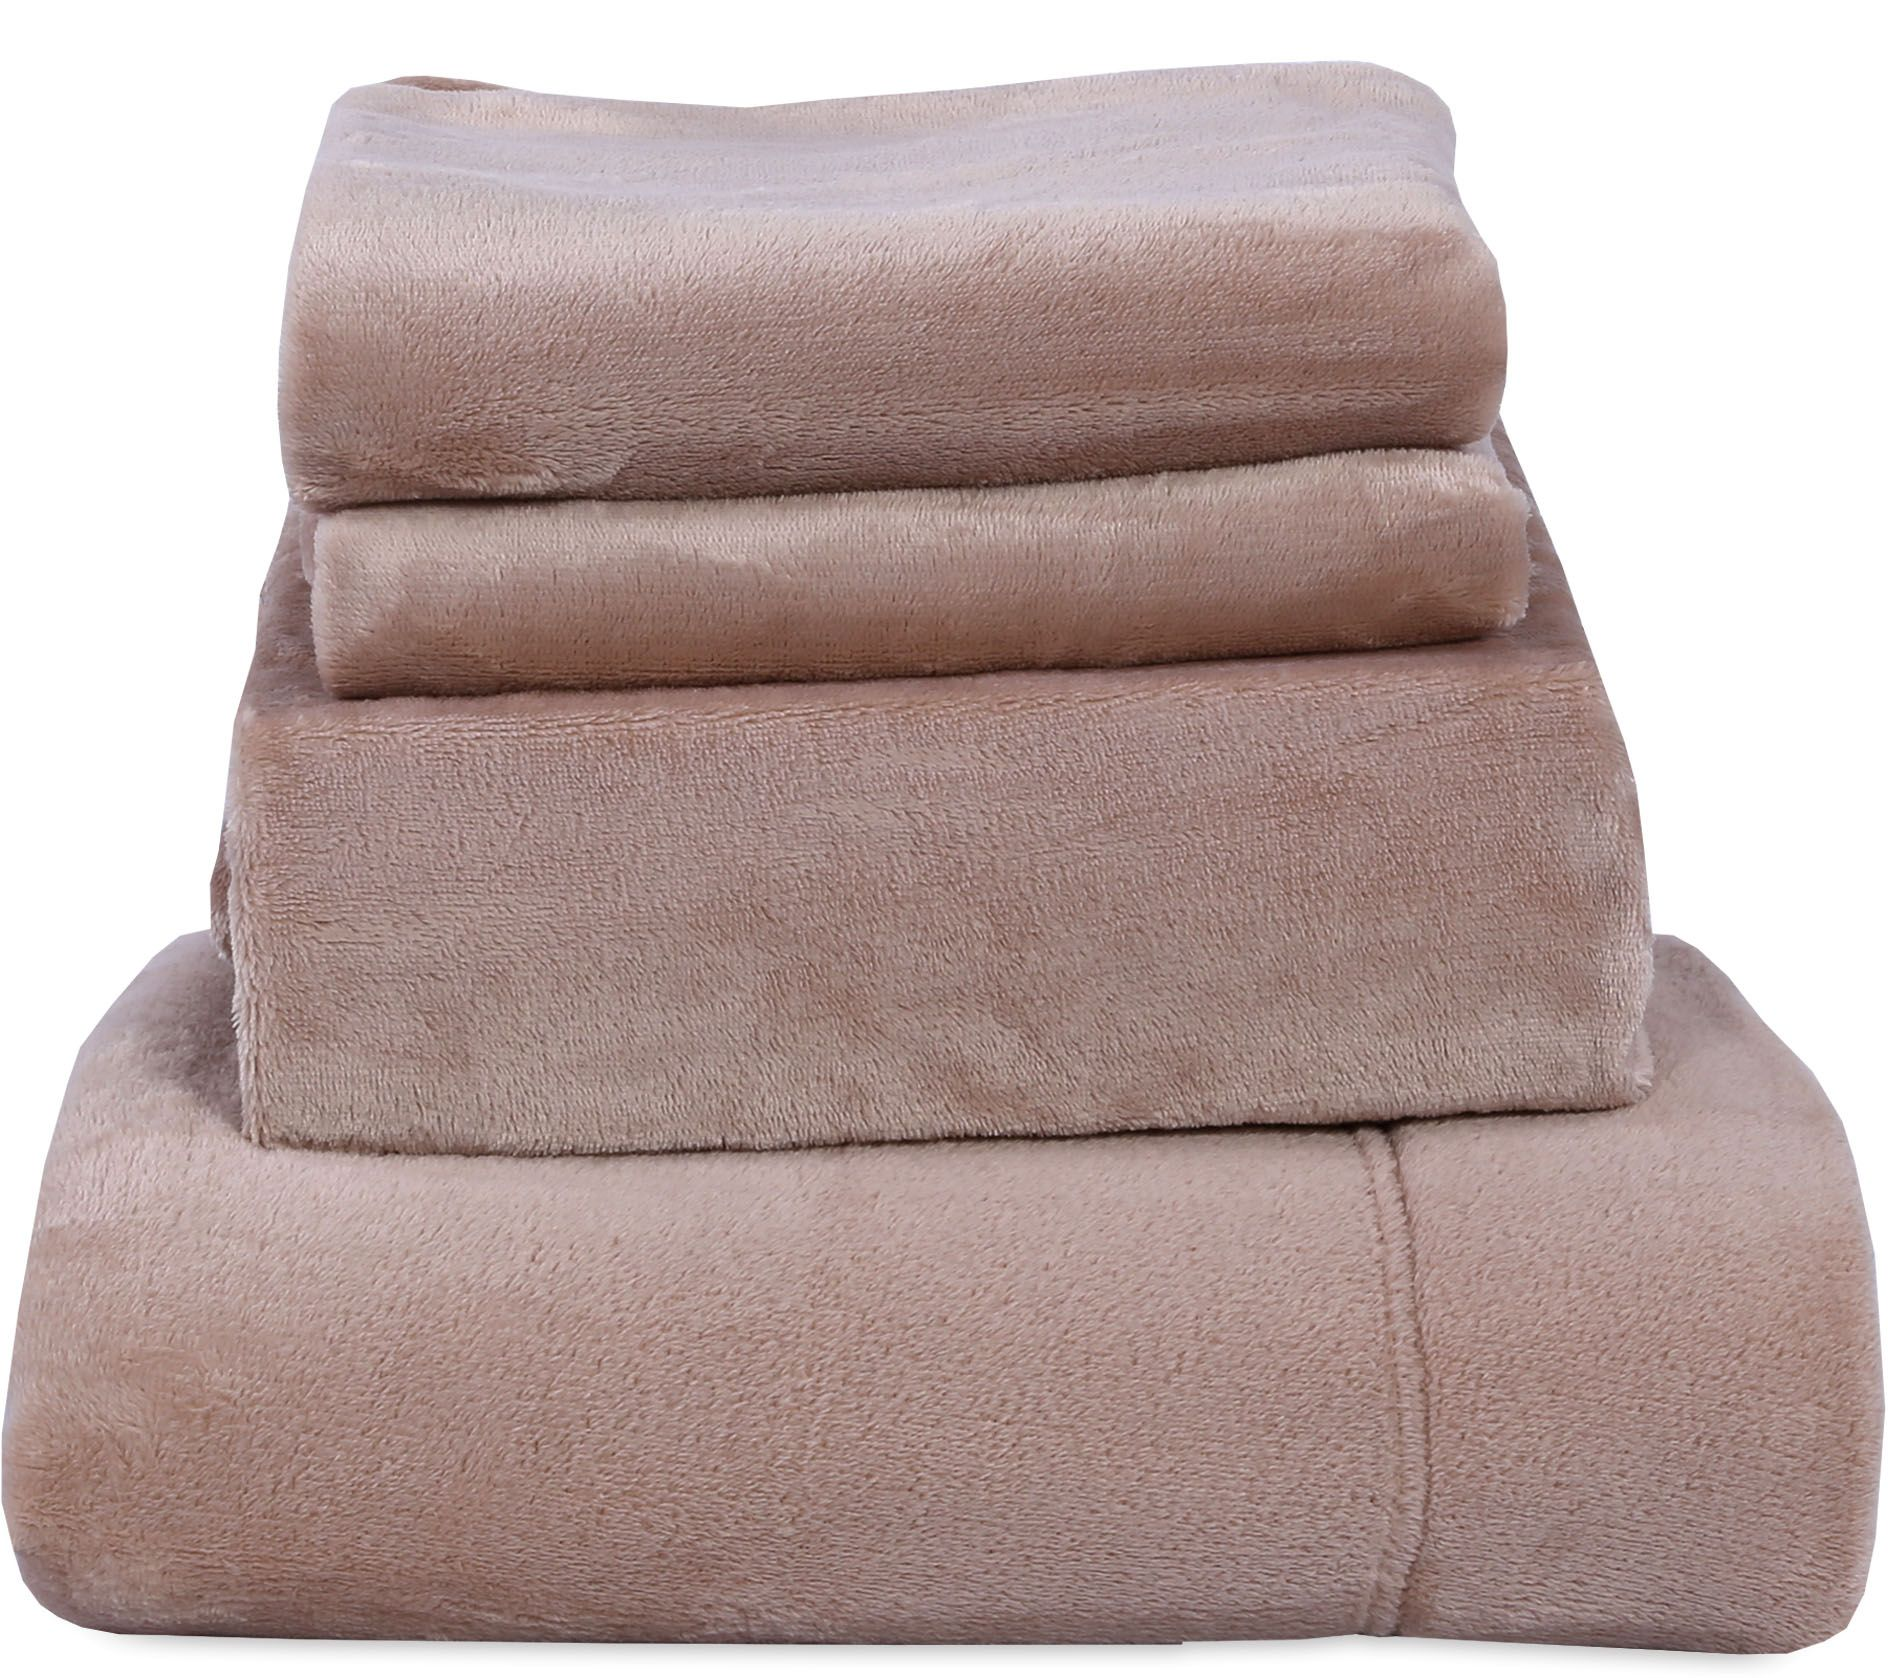 b38297ae42 Berkshire Blanket Velvet Soft Cozy Twin Sheet Set - Page 1 — QVC.com